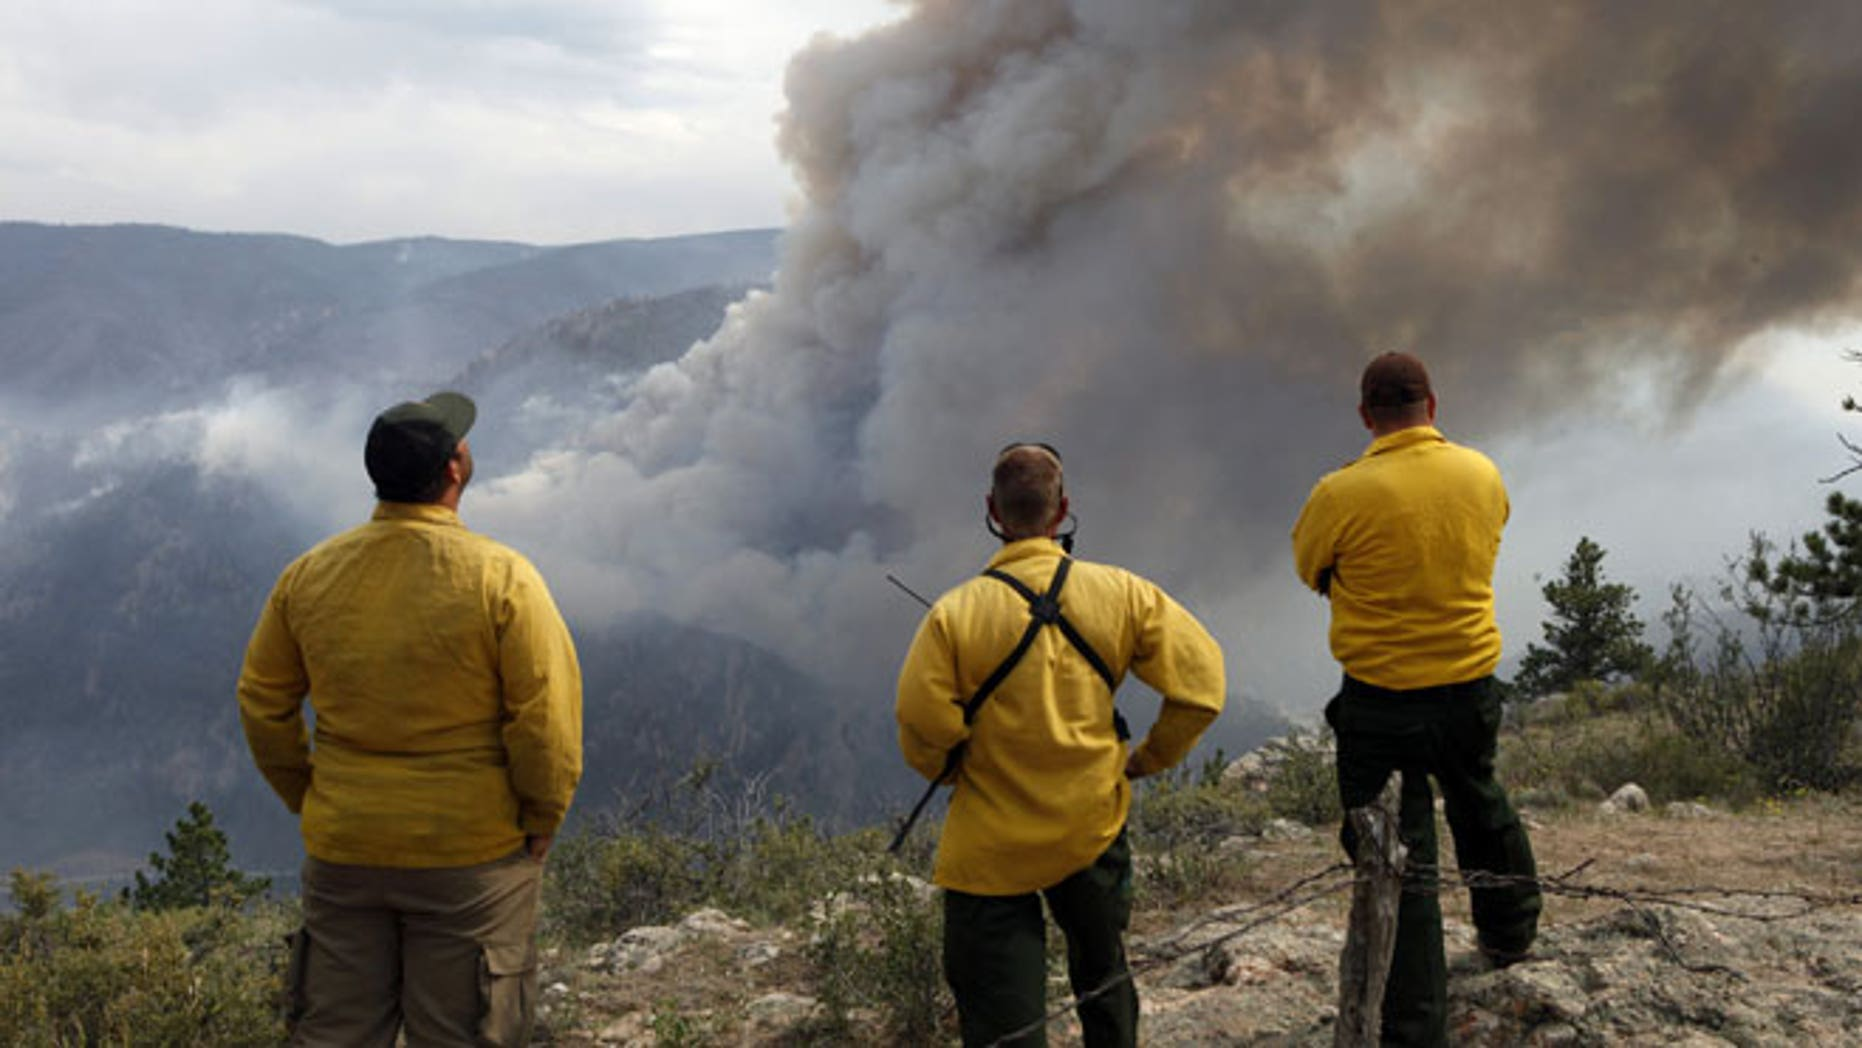 June 14, 2012: Firefighters watch as flames leap hundreds of feet in the air as the High Park wildfire fire explodes on the south side of Poudre Canyon west of Fort Collins, Colo.